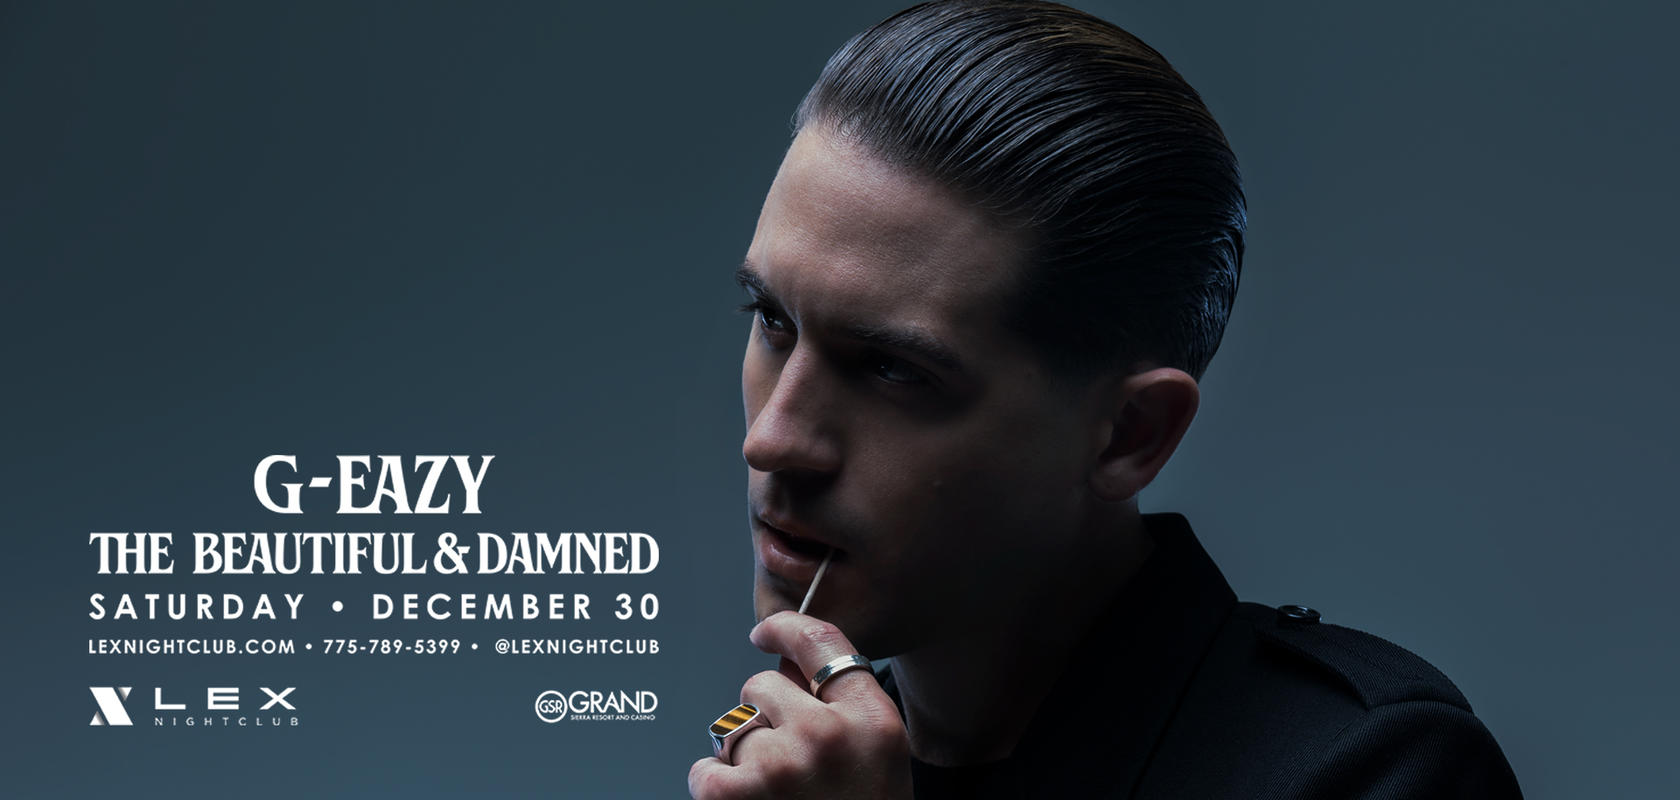 G-Eazy: The Beautiful & Damned